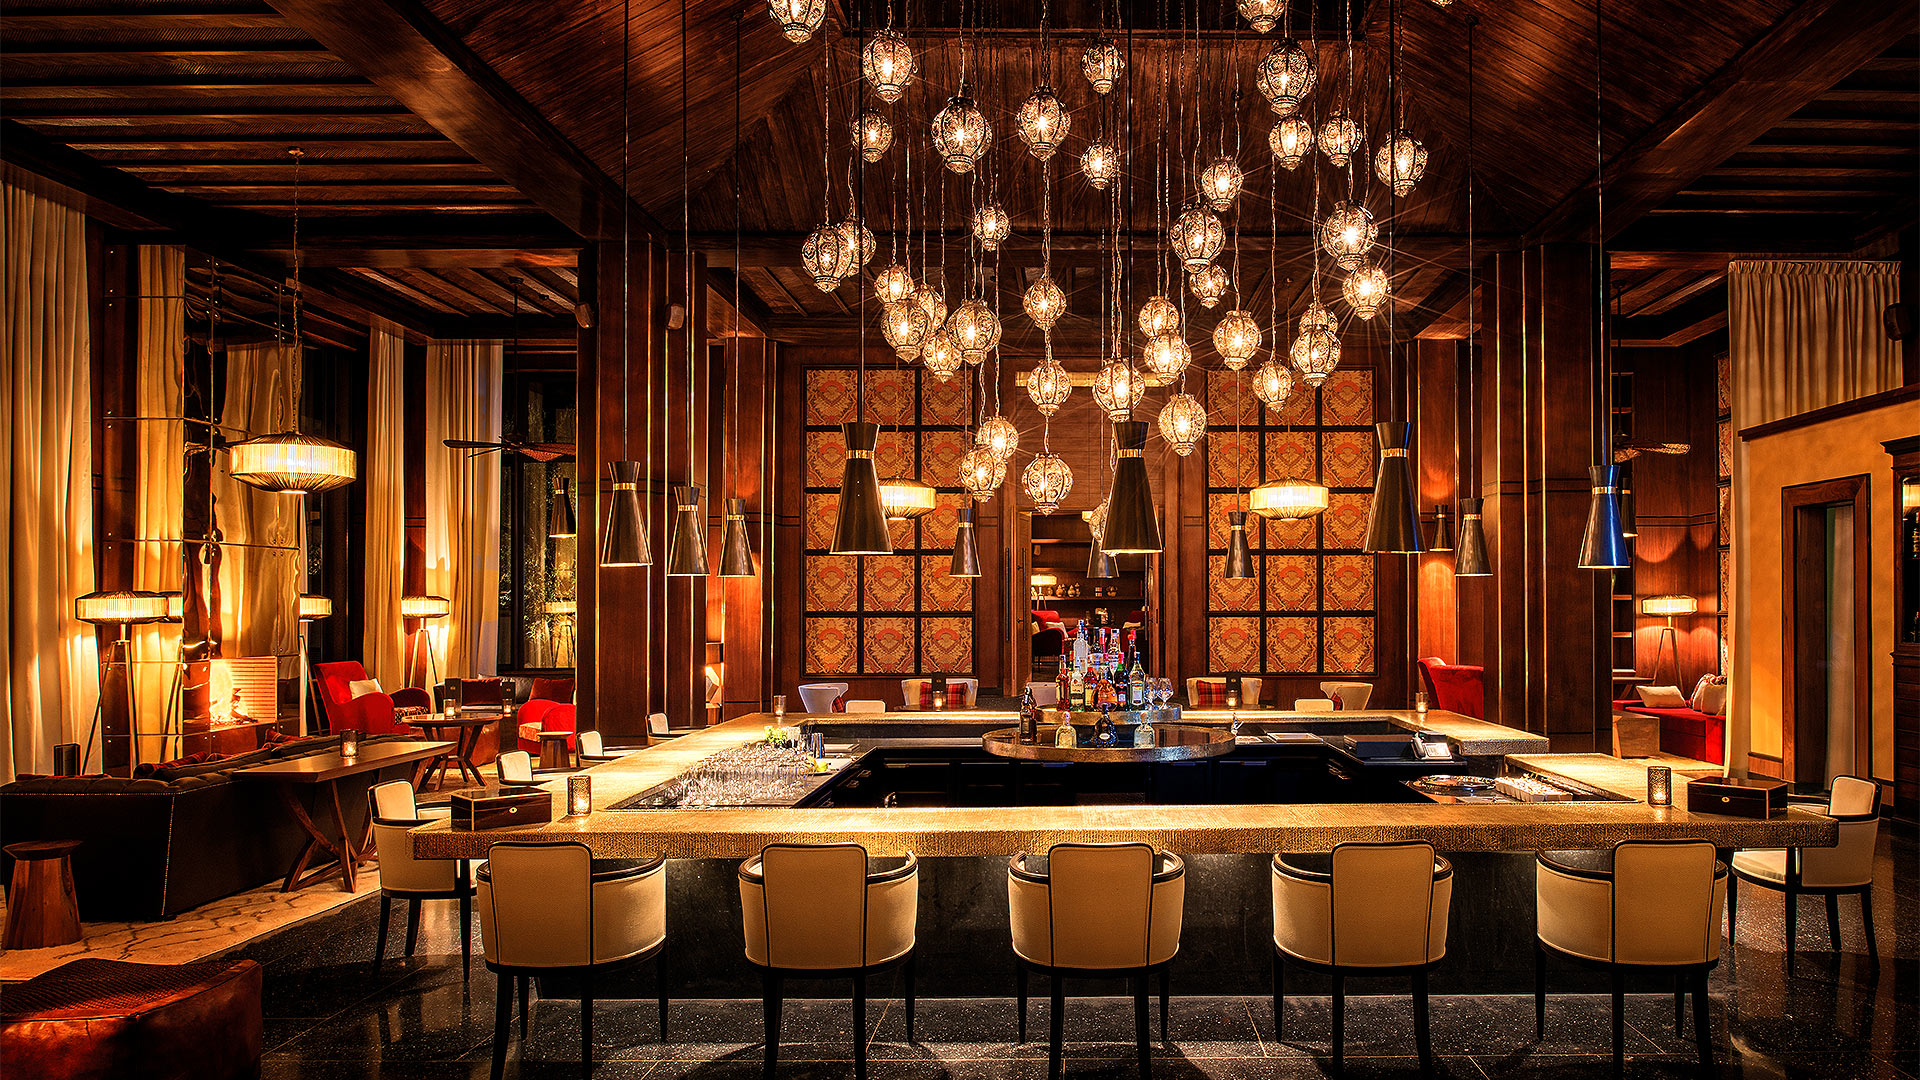 Le-Bar-royal-palm-marrakech-fashionela